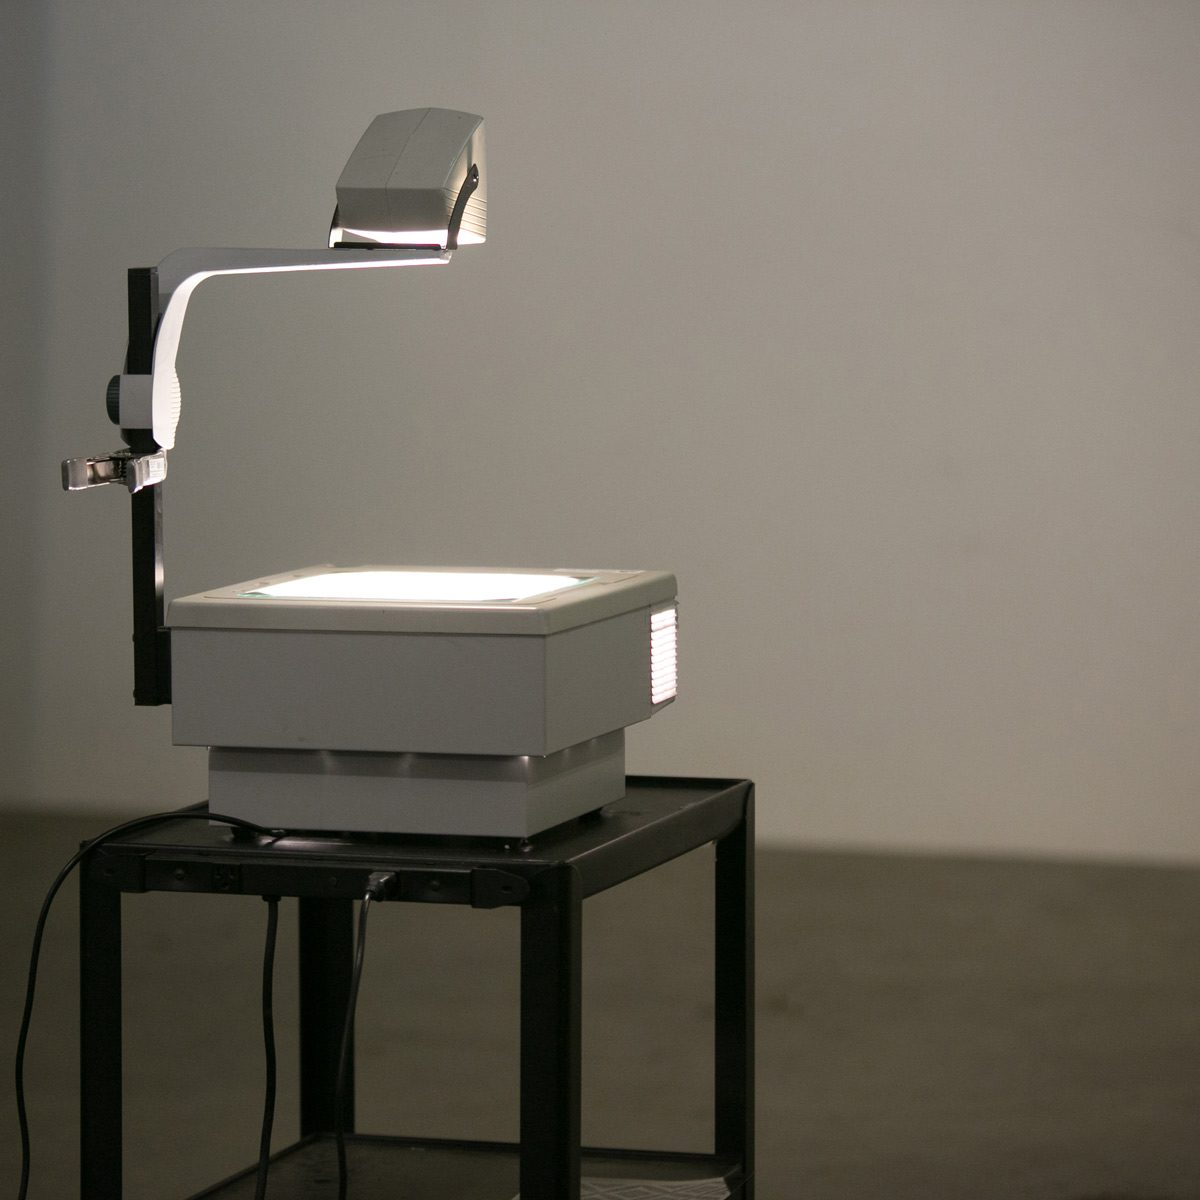 Overhead-projector